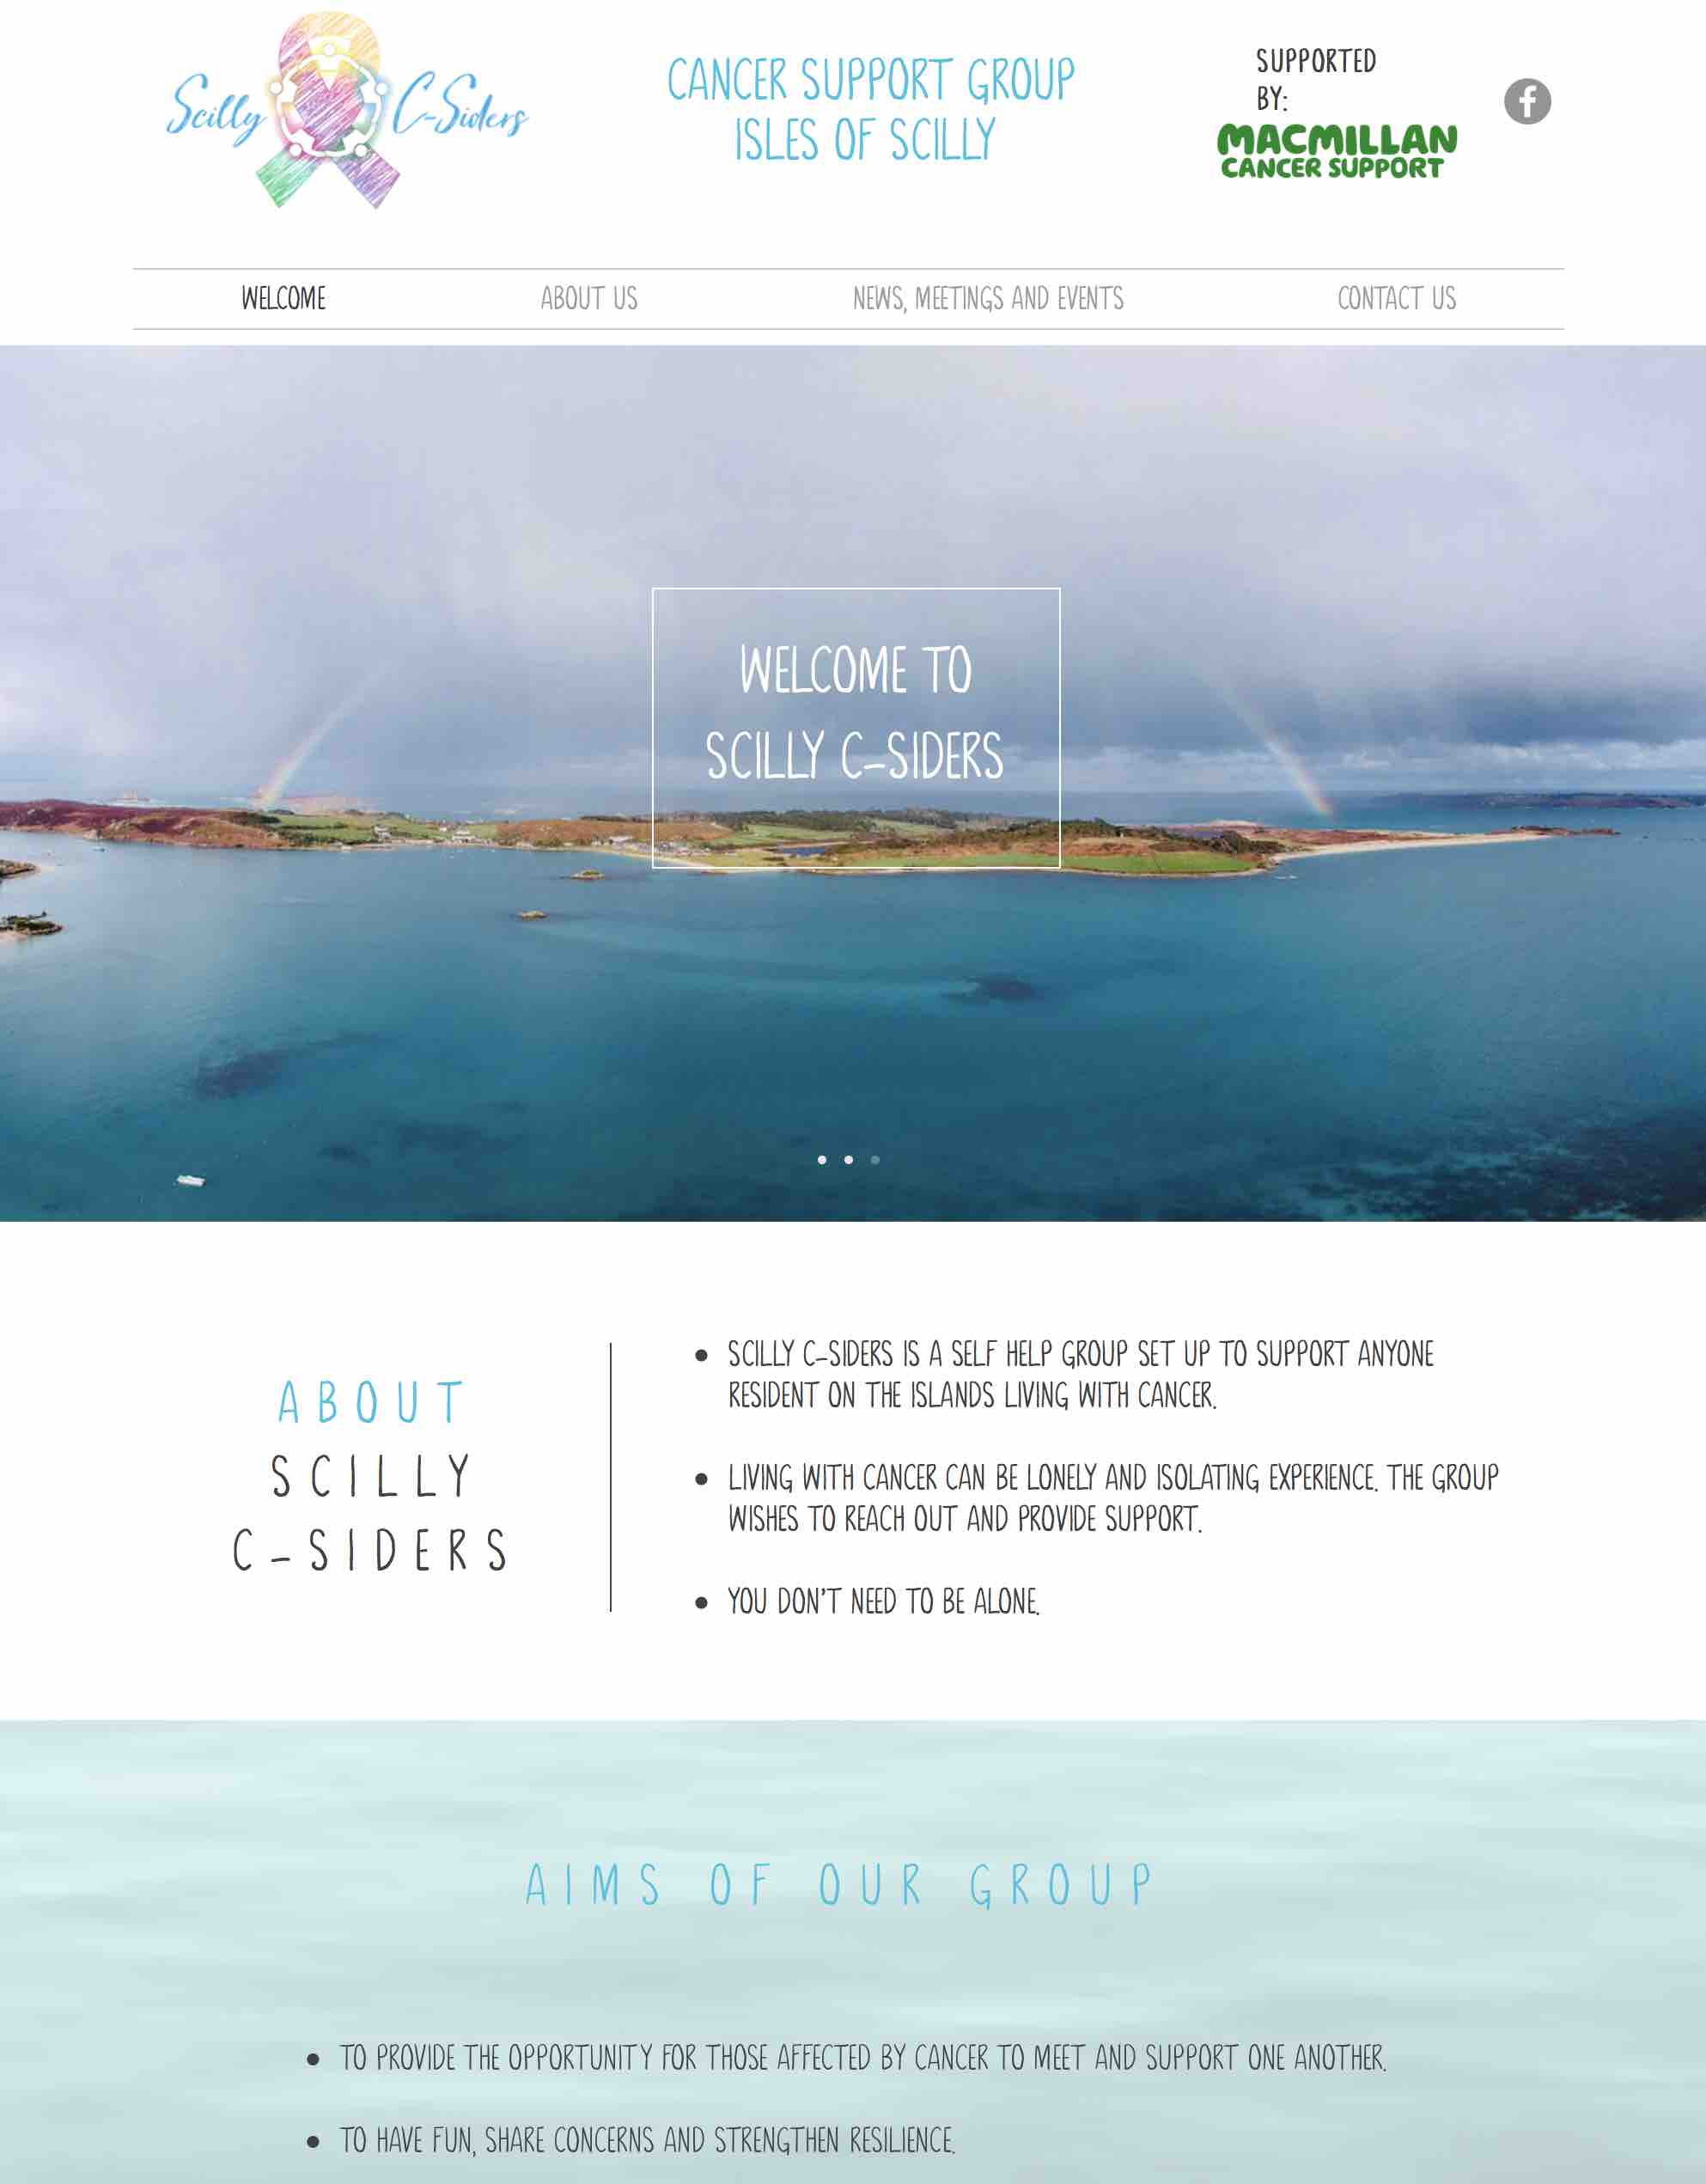 Scilly C-Siders